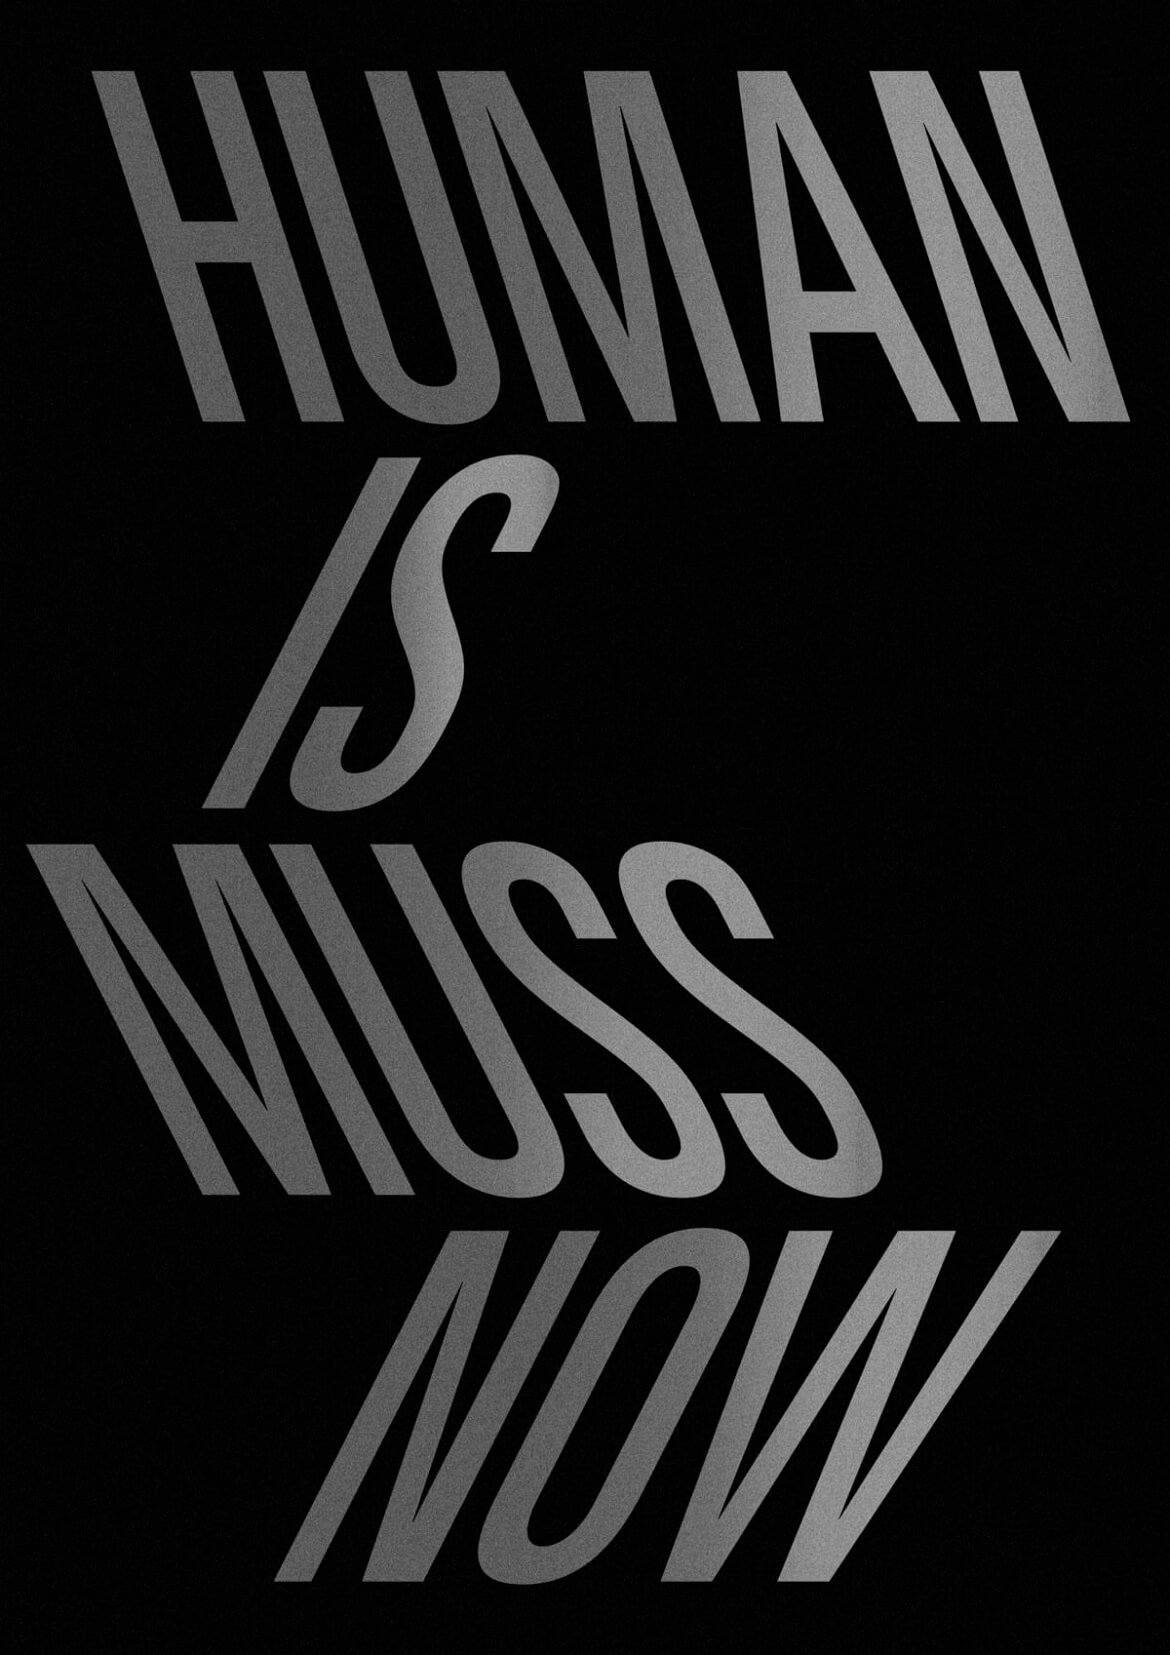 Human_is_muss6 Humanismus